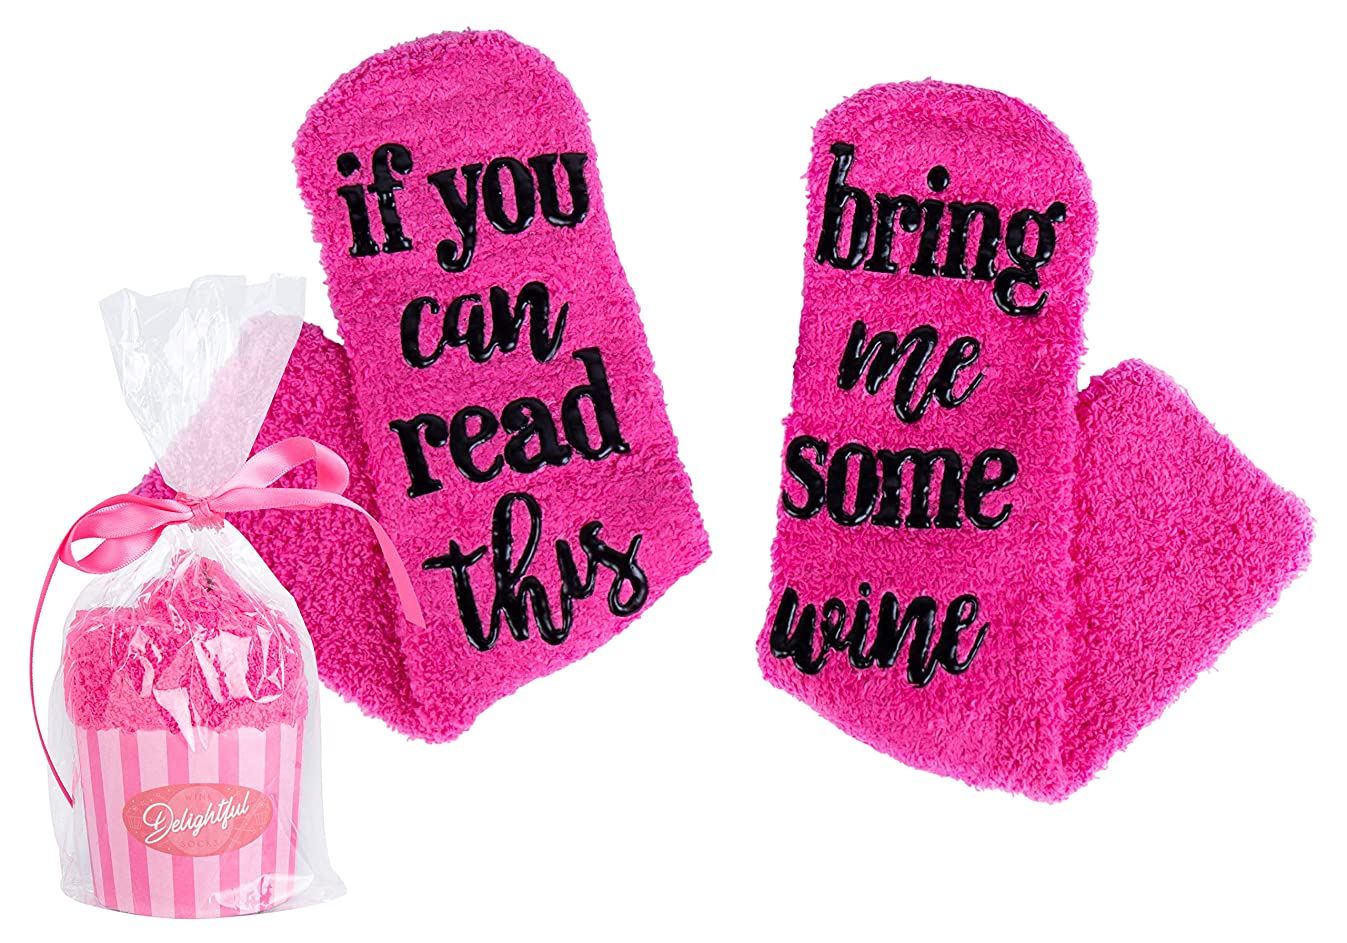 Wine Socks with Cupcake Packaging - If You Can Read This Bring Me Some Wine - 6 Colors to Choose From!